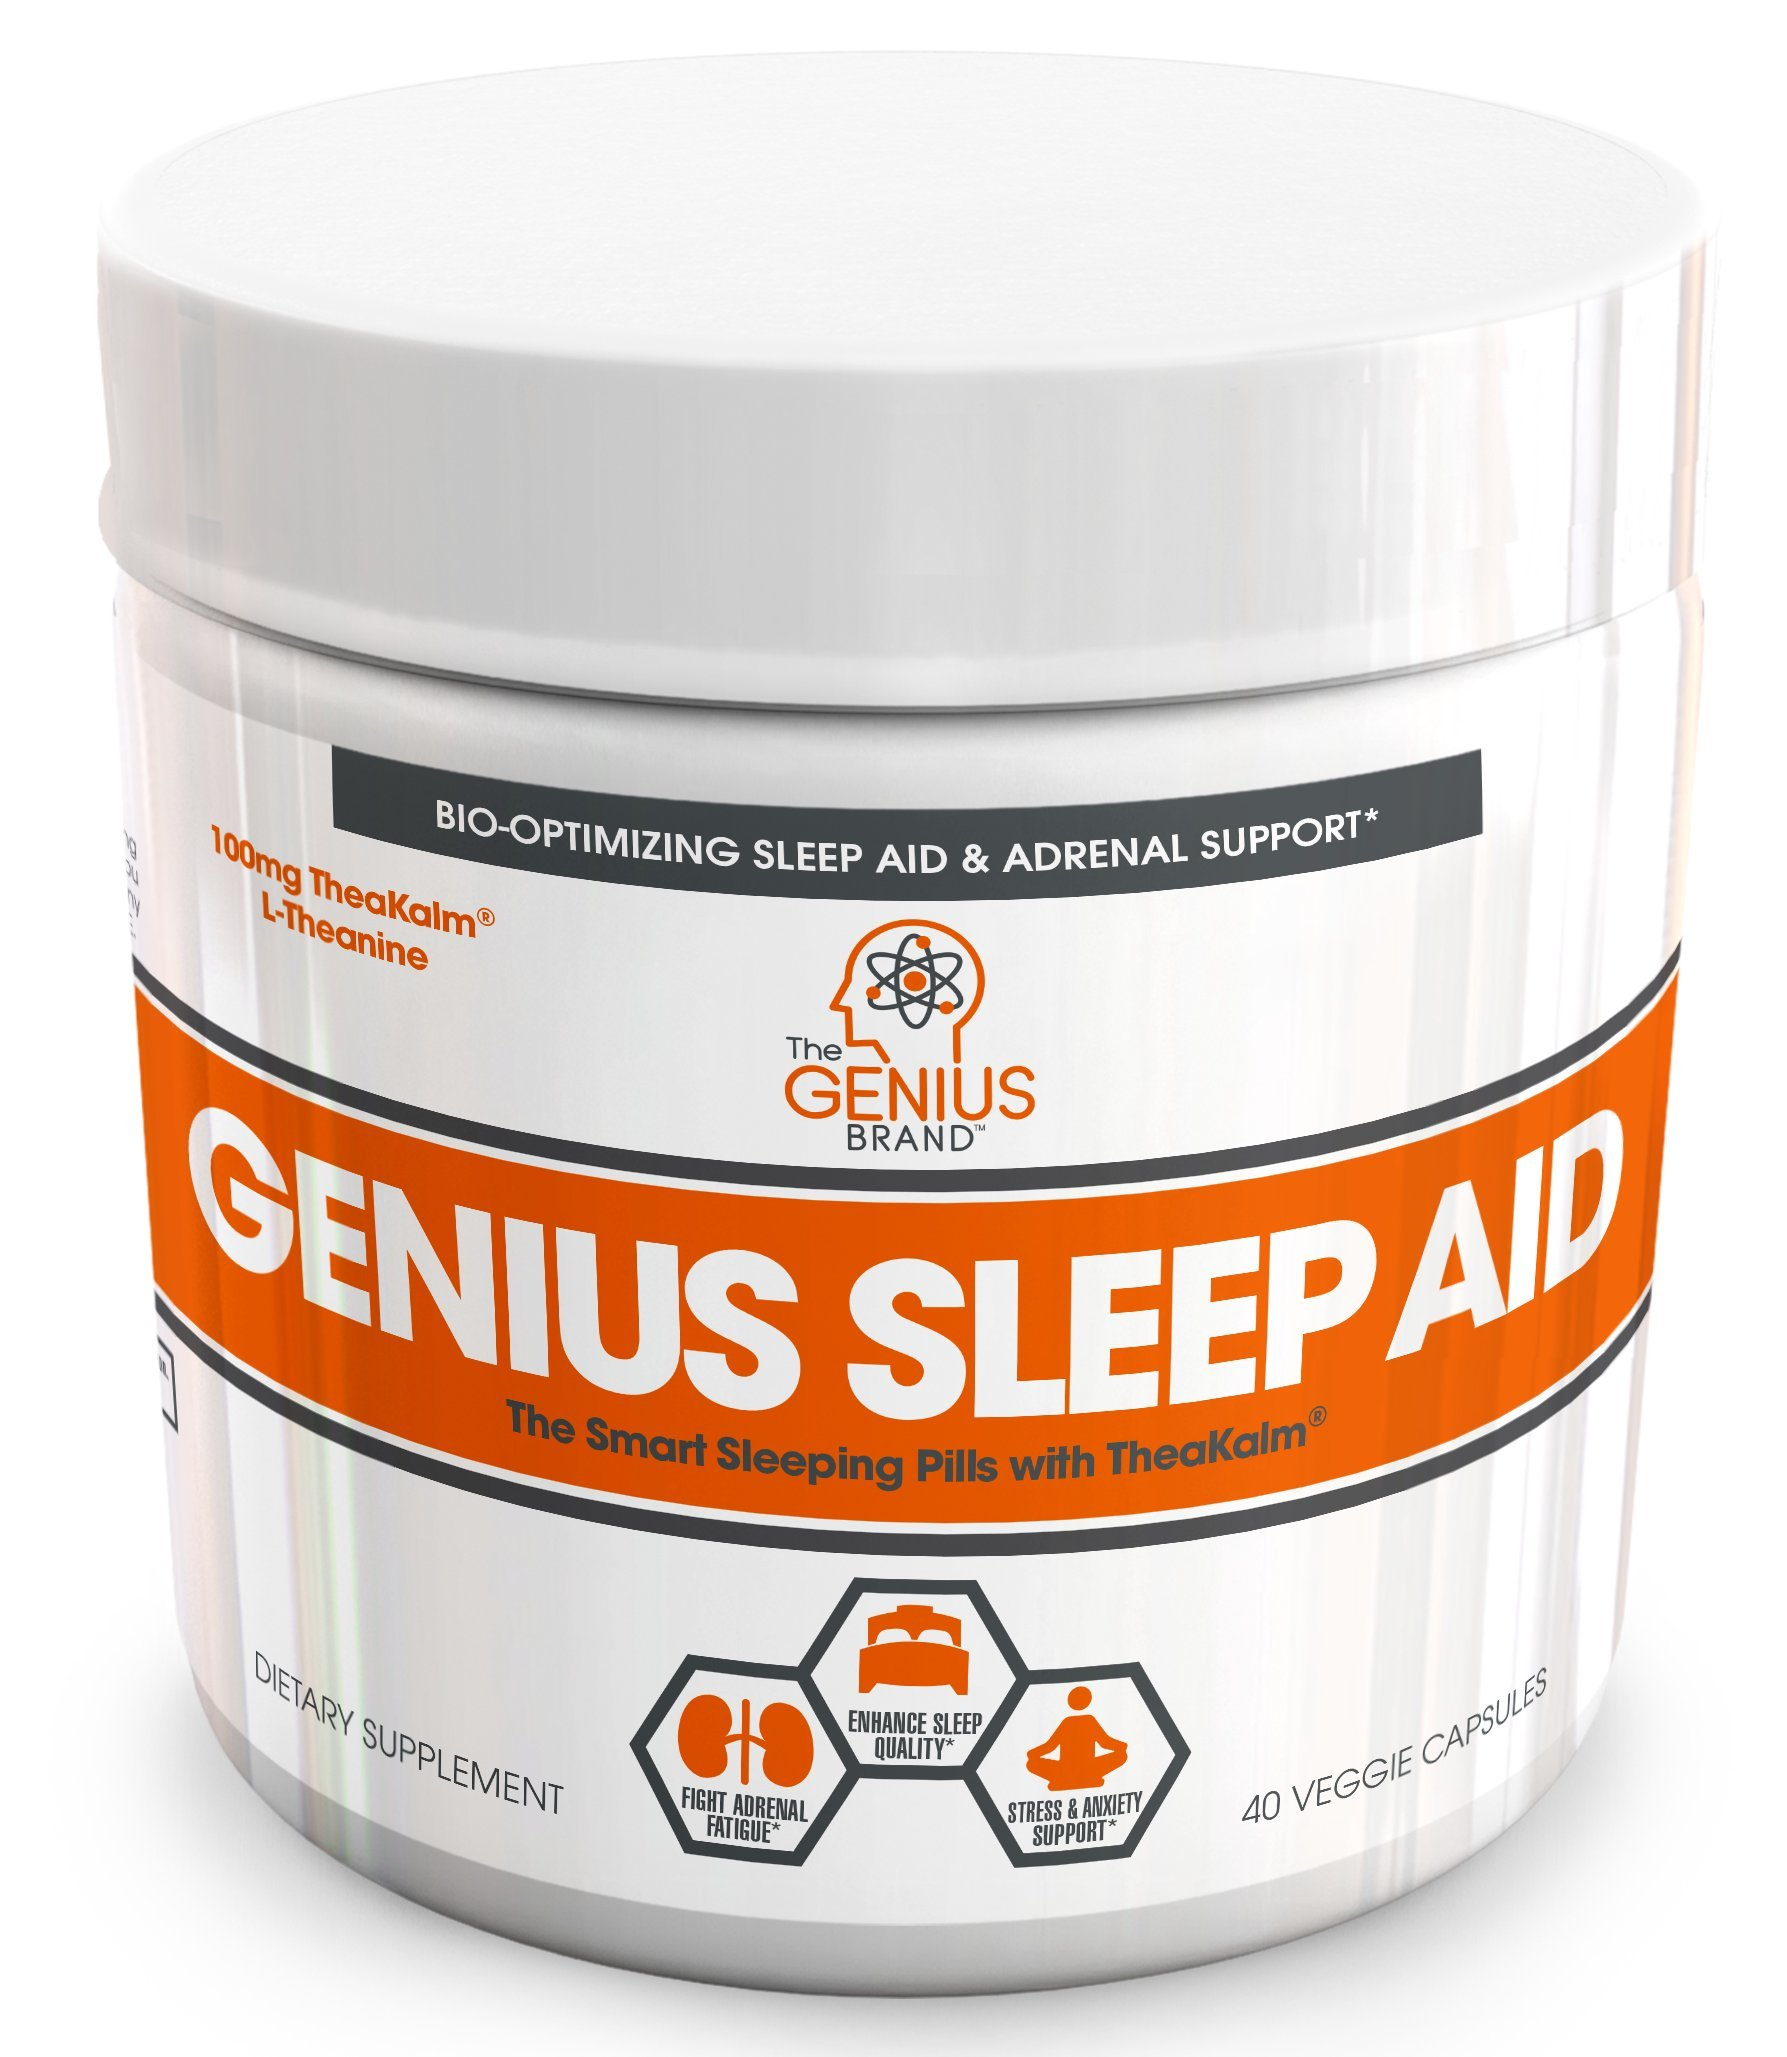 GENIUS SLEEP AID – Smart Sleeping Pills & Adrenal Fatigue Supplement, Natural Stress, Anxiety & Insomnia Relief - Relaxation Enhancer and Mood Support w/ Inositol, L-Theanine & Glycine – 40 capsules